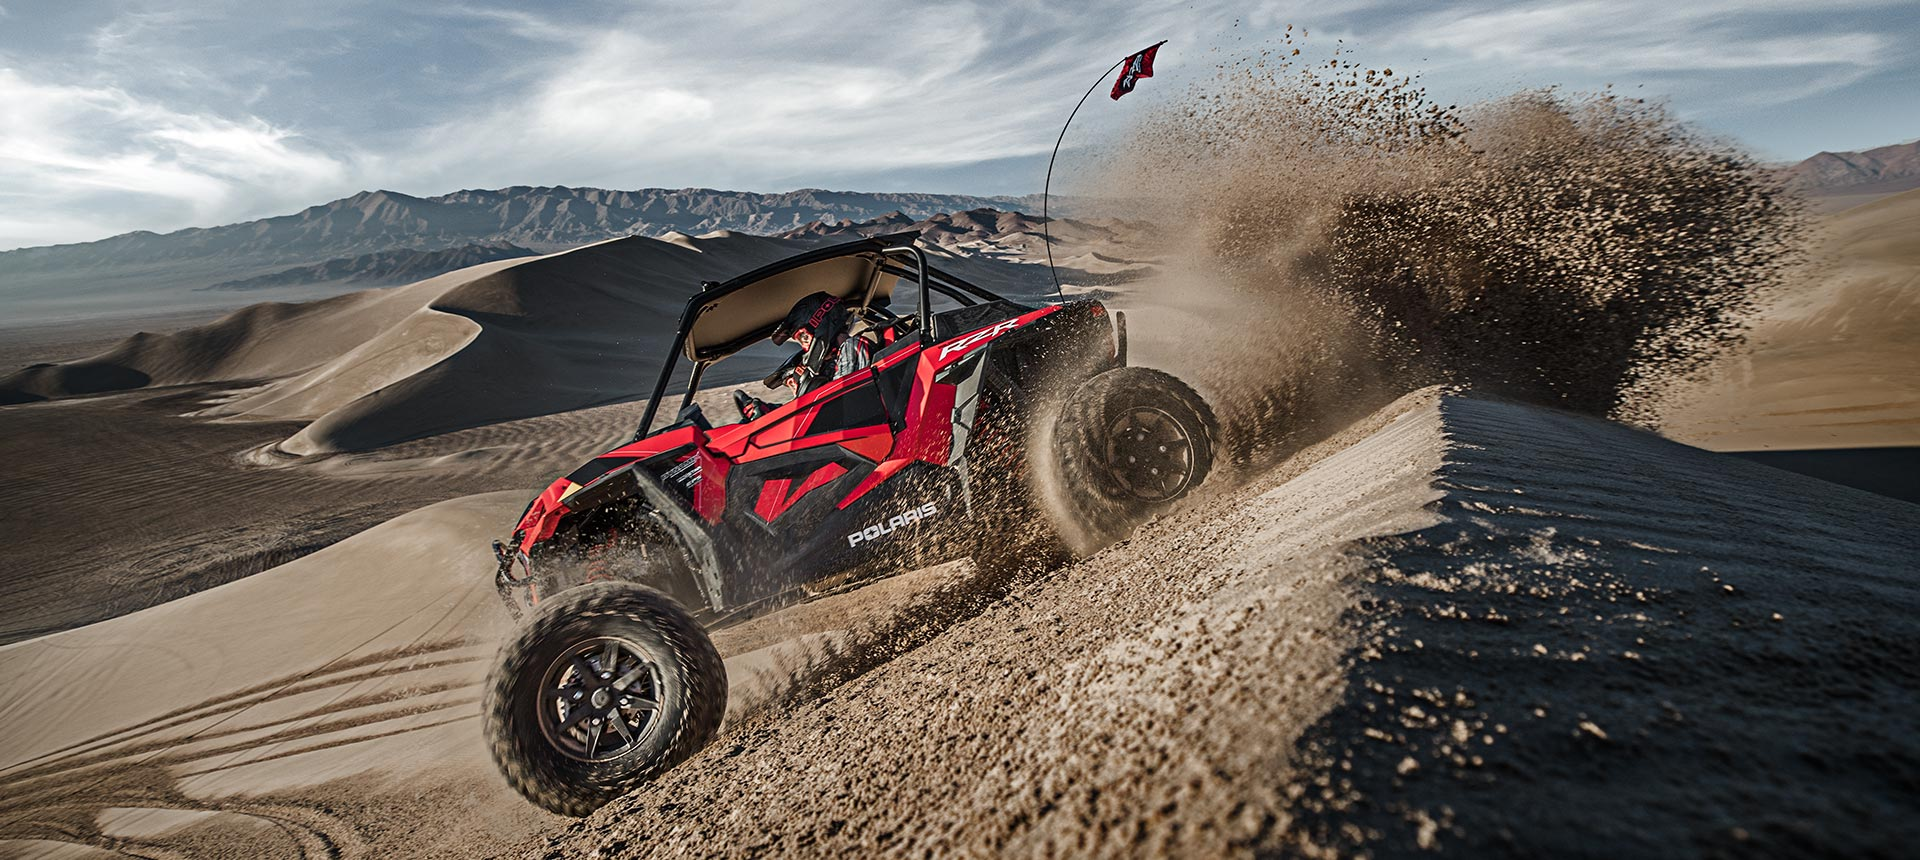 Polaris RZR going over a sand dune